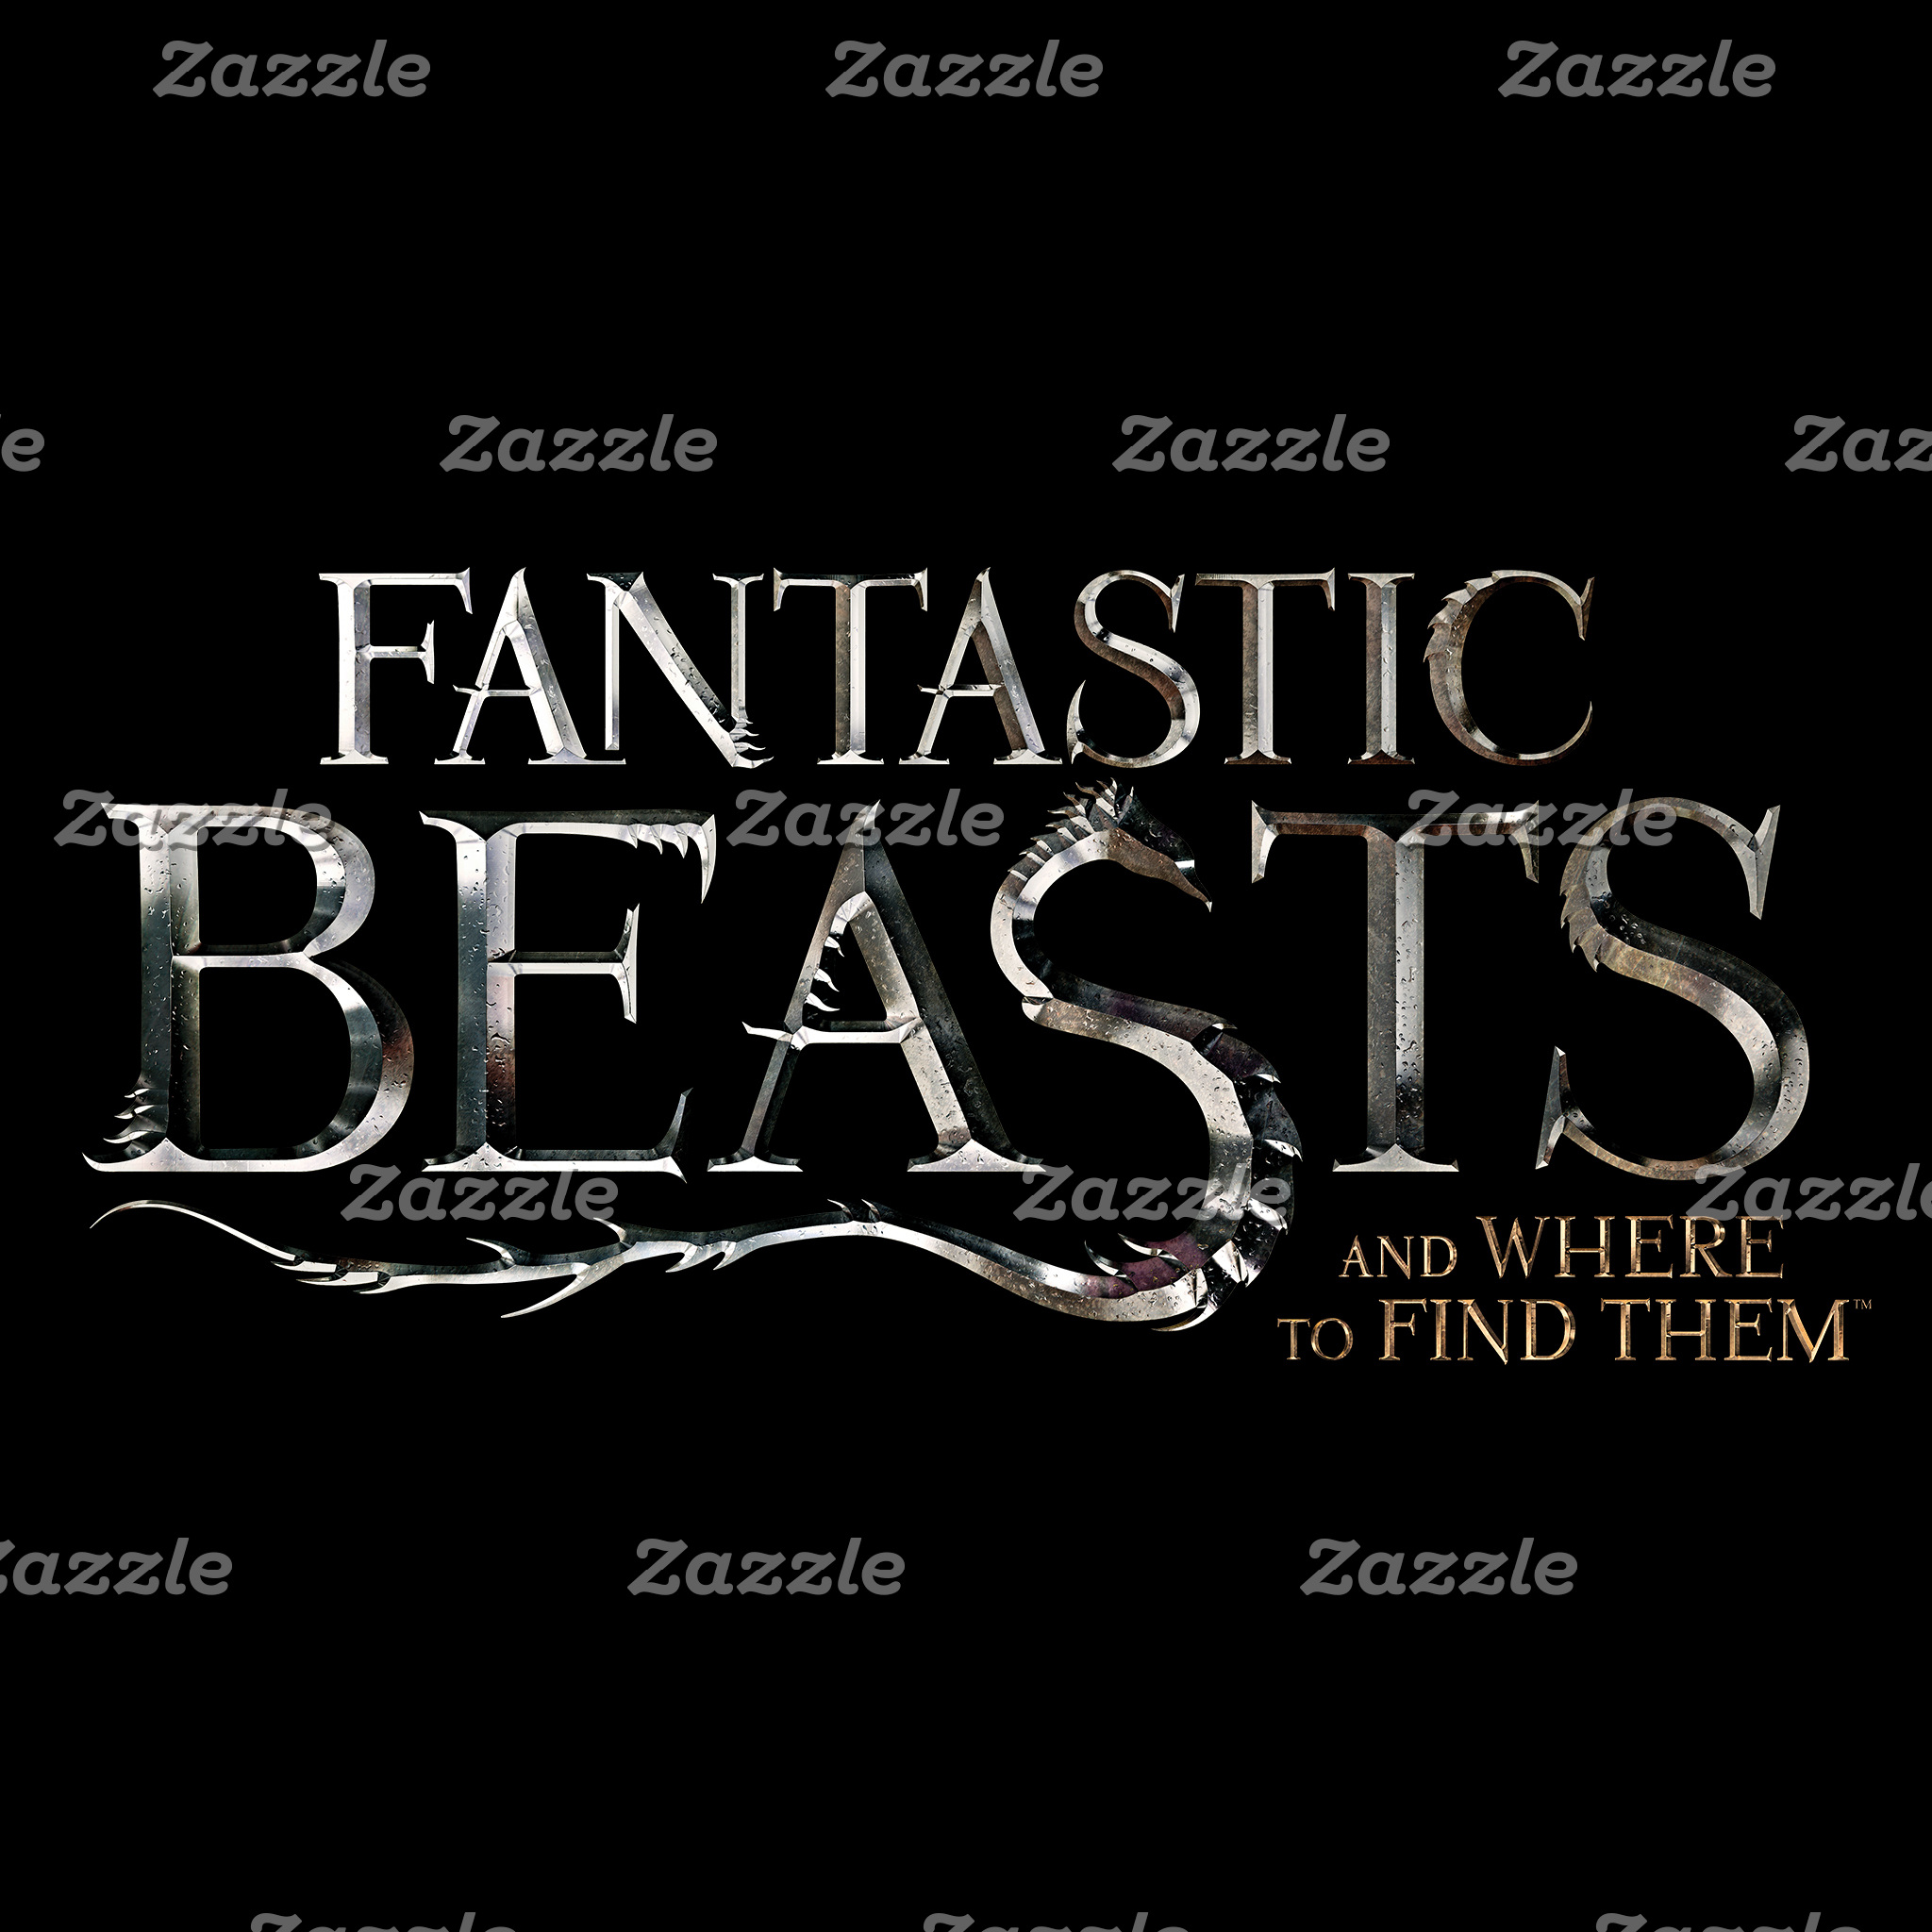 FANTASTIC BEASTS AND WHERE TO FIND THEM™